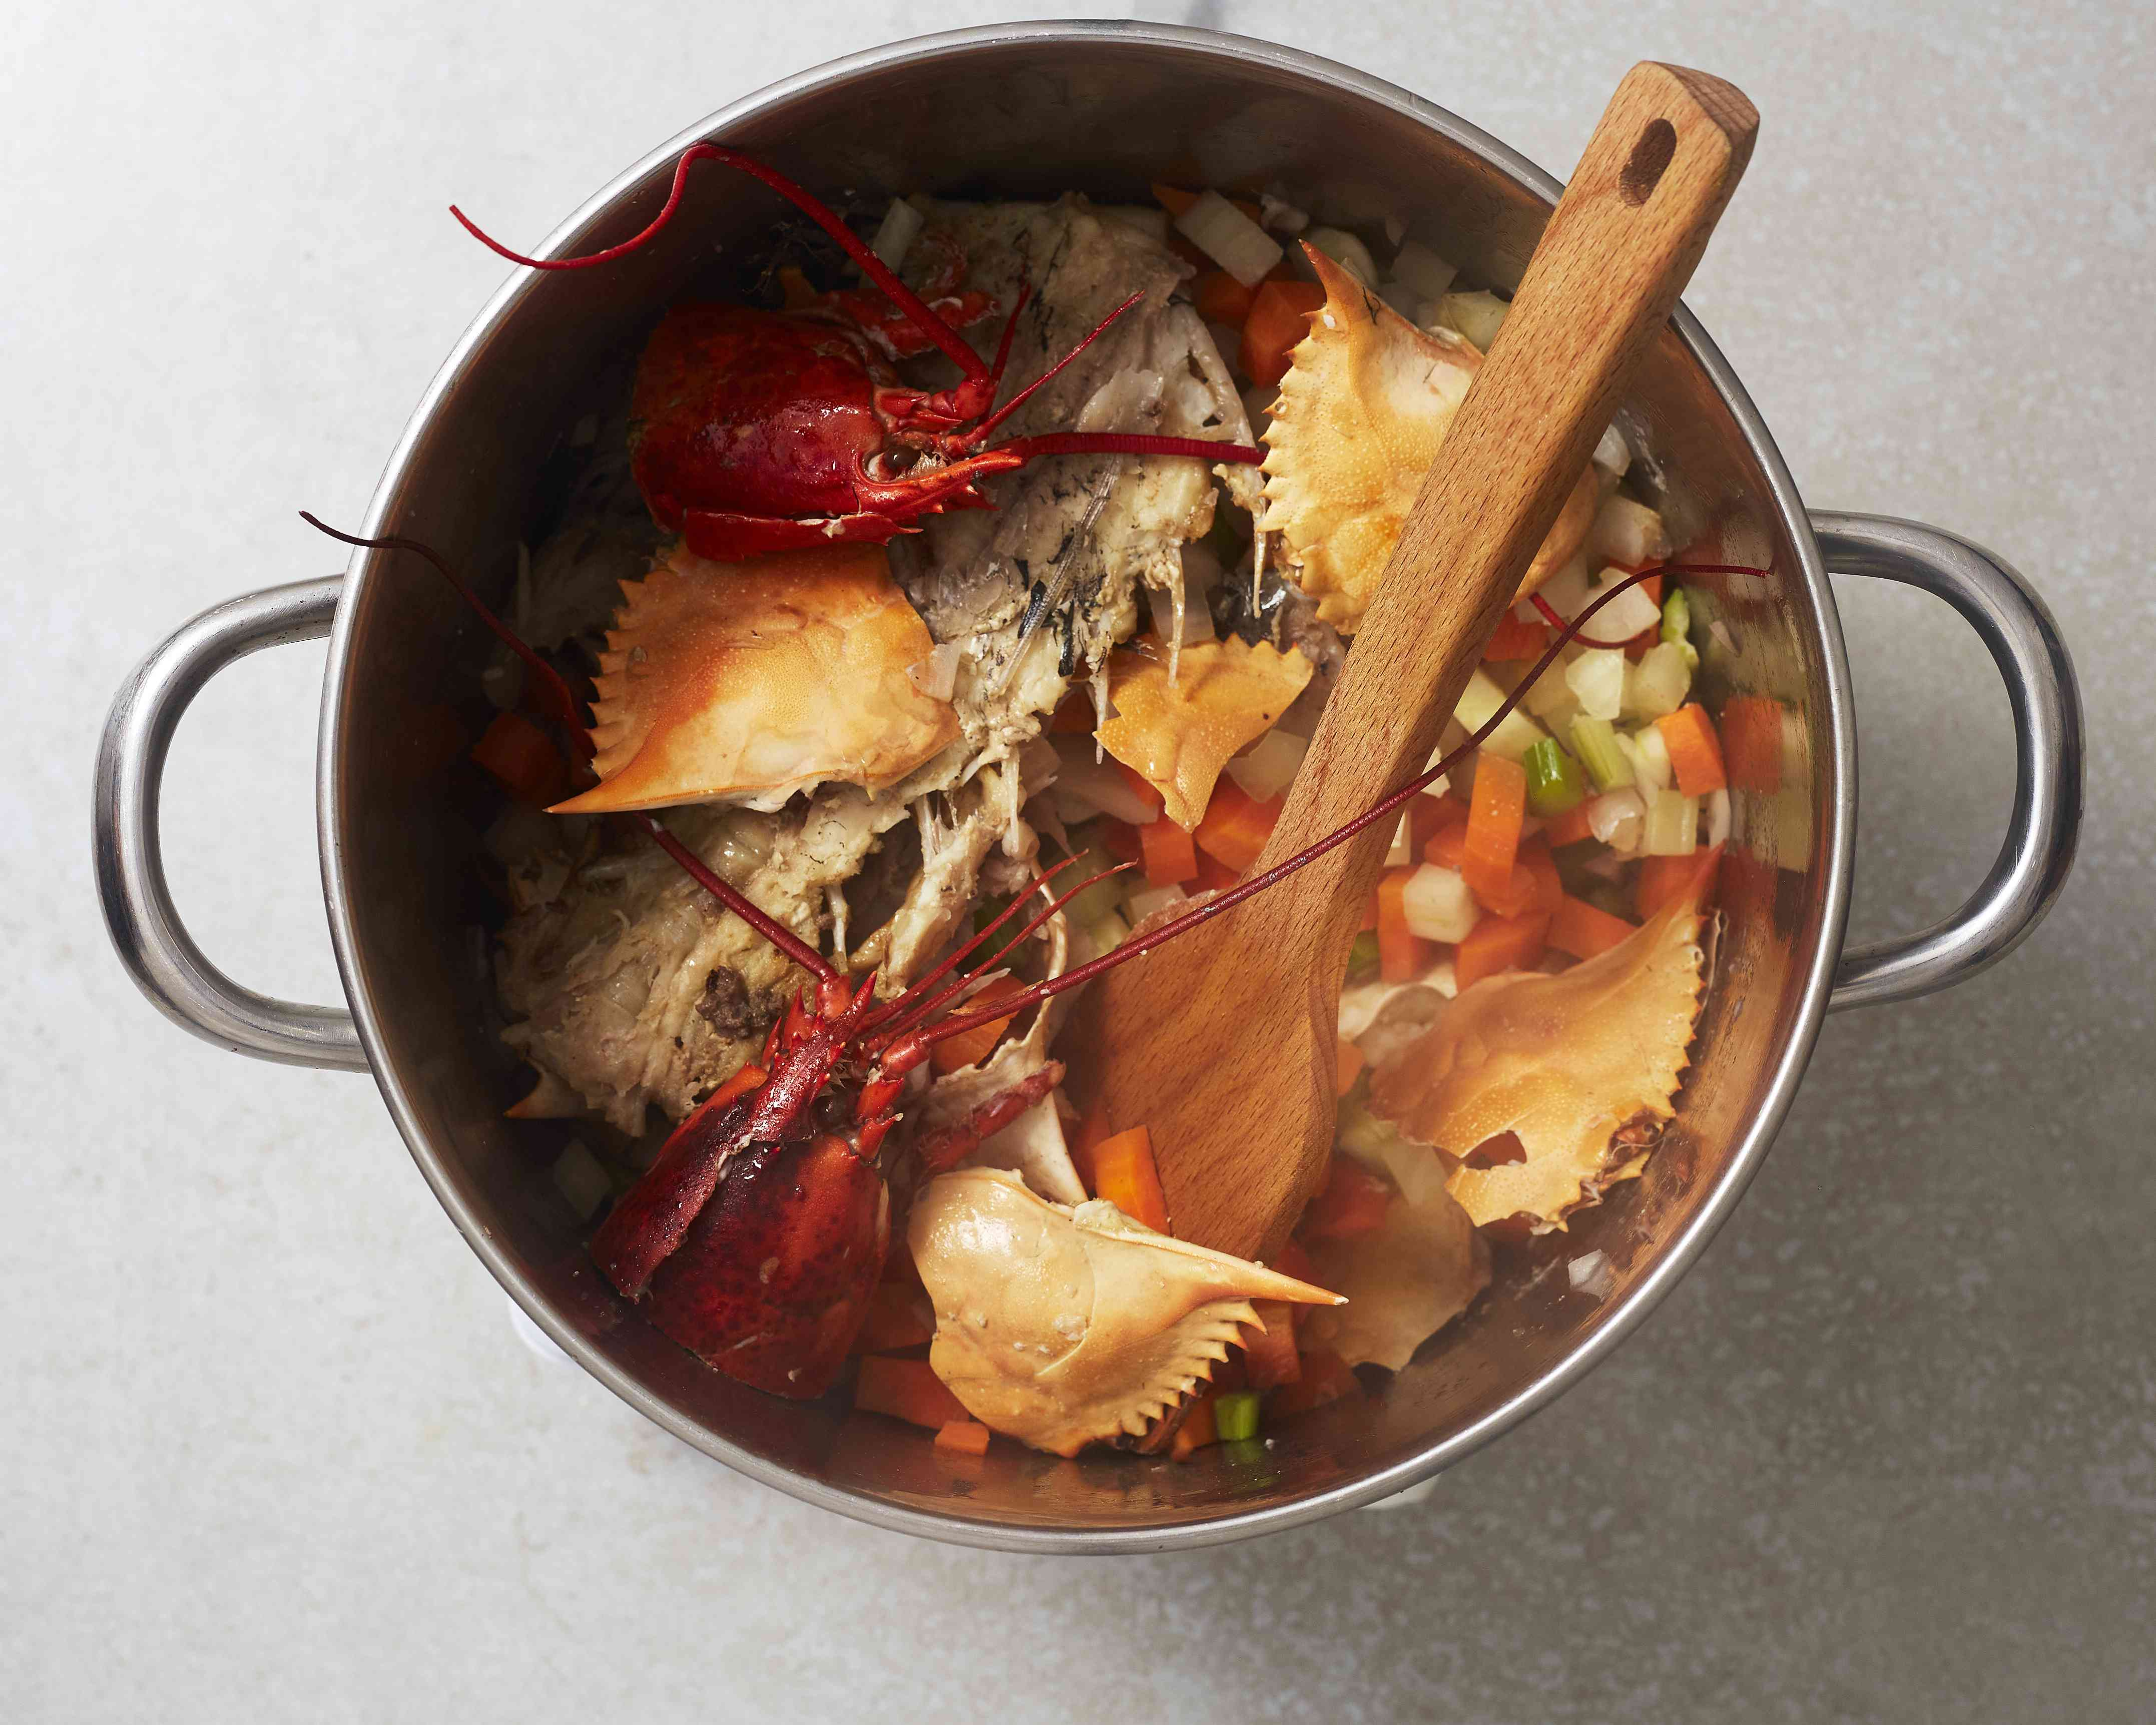 simmer the fish and vegetable mixture in the pot